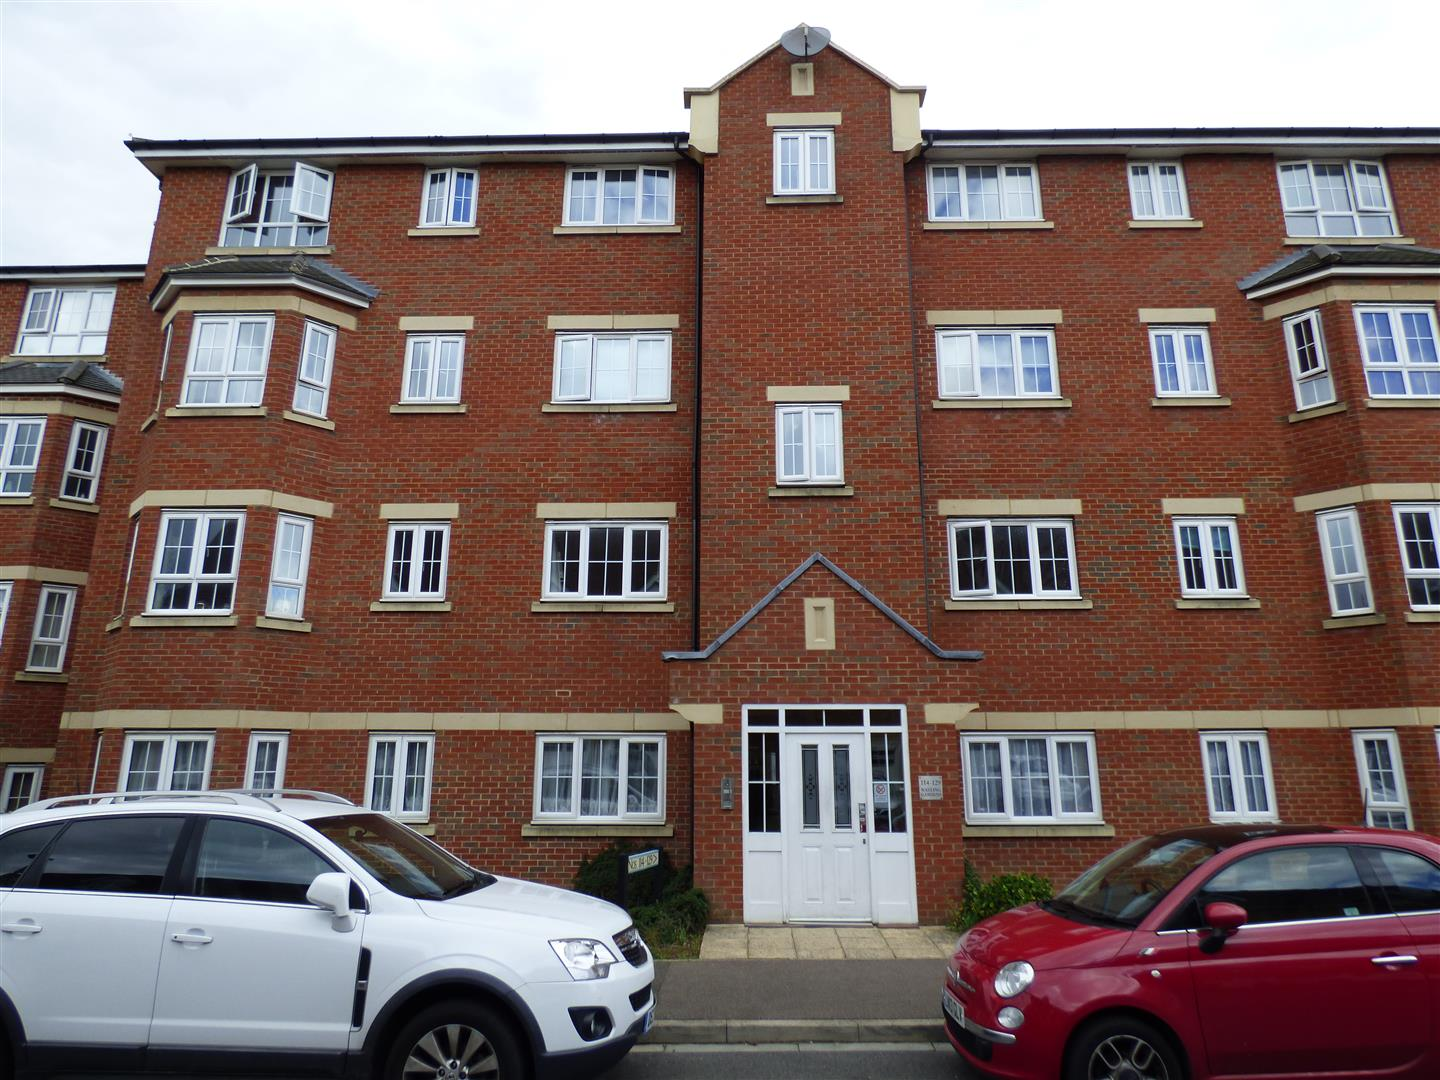 2 Bedrooms Apartment Flat for sale in Watling Gardens, Dunstable